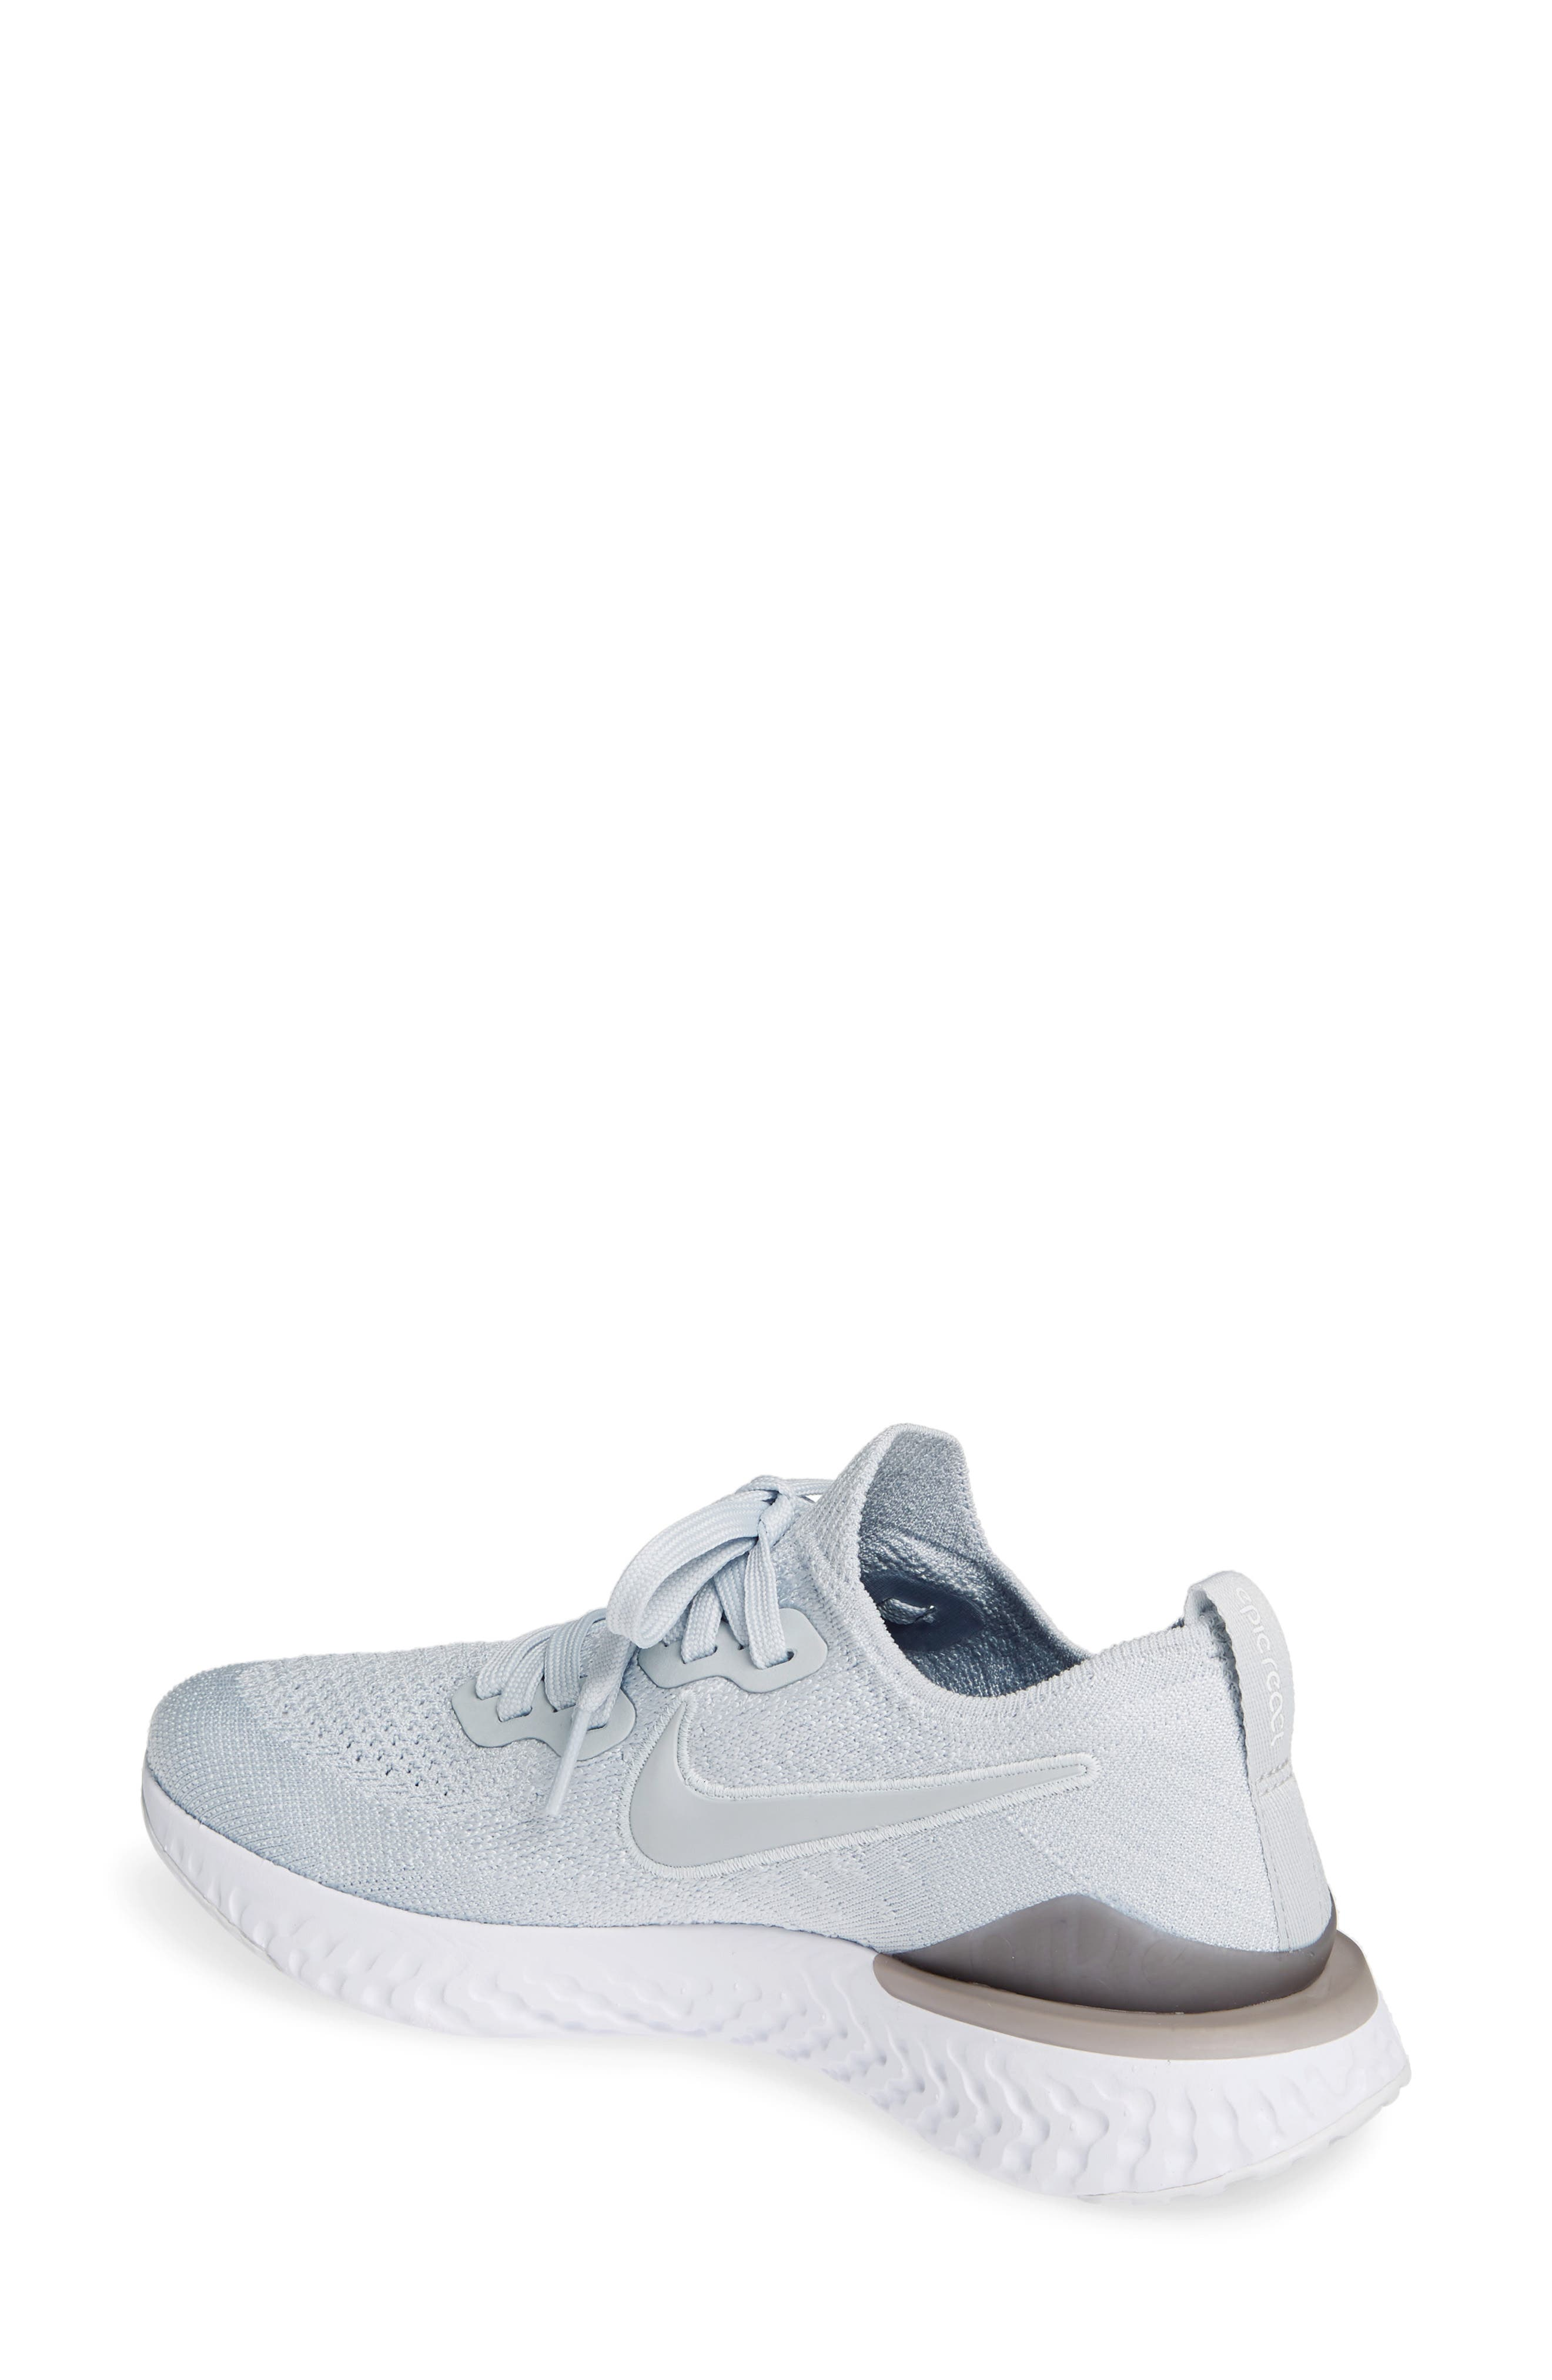 ,                             Epic React Flyknit 2 Running Shoe,                             Alternate thumbnail 2, color,                             PURE PLATINUM/ WOLF GREY